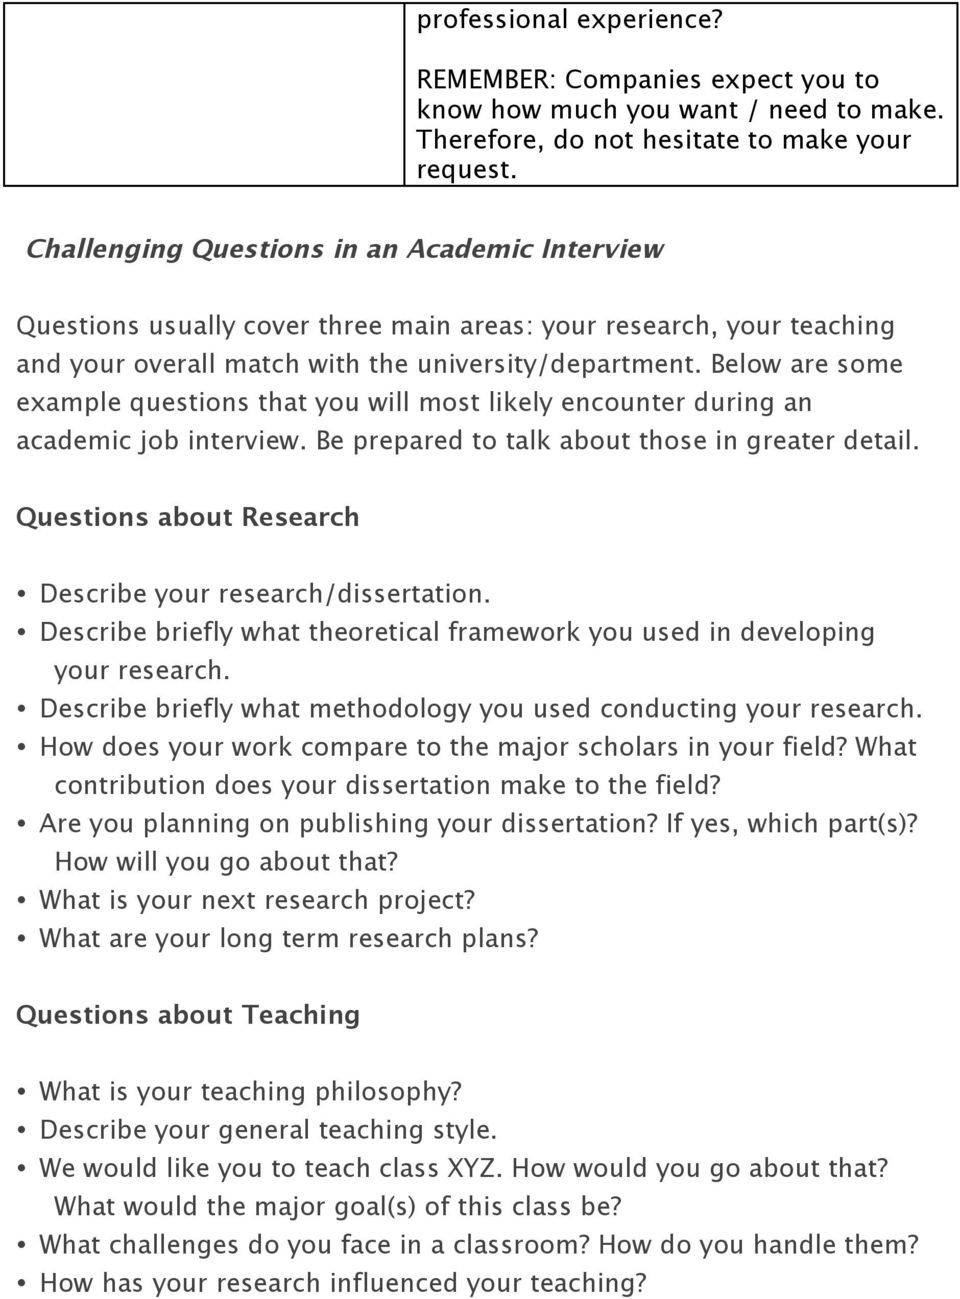 Below are some example questions that you will most likely encounter during an academic job interview. Be prepared to talk about those in greater detail.